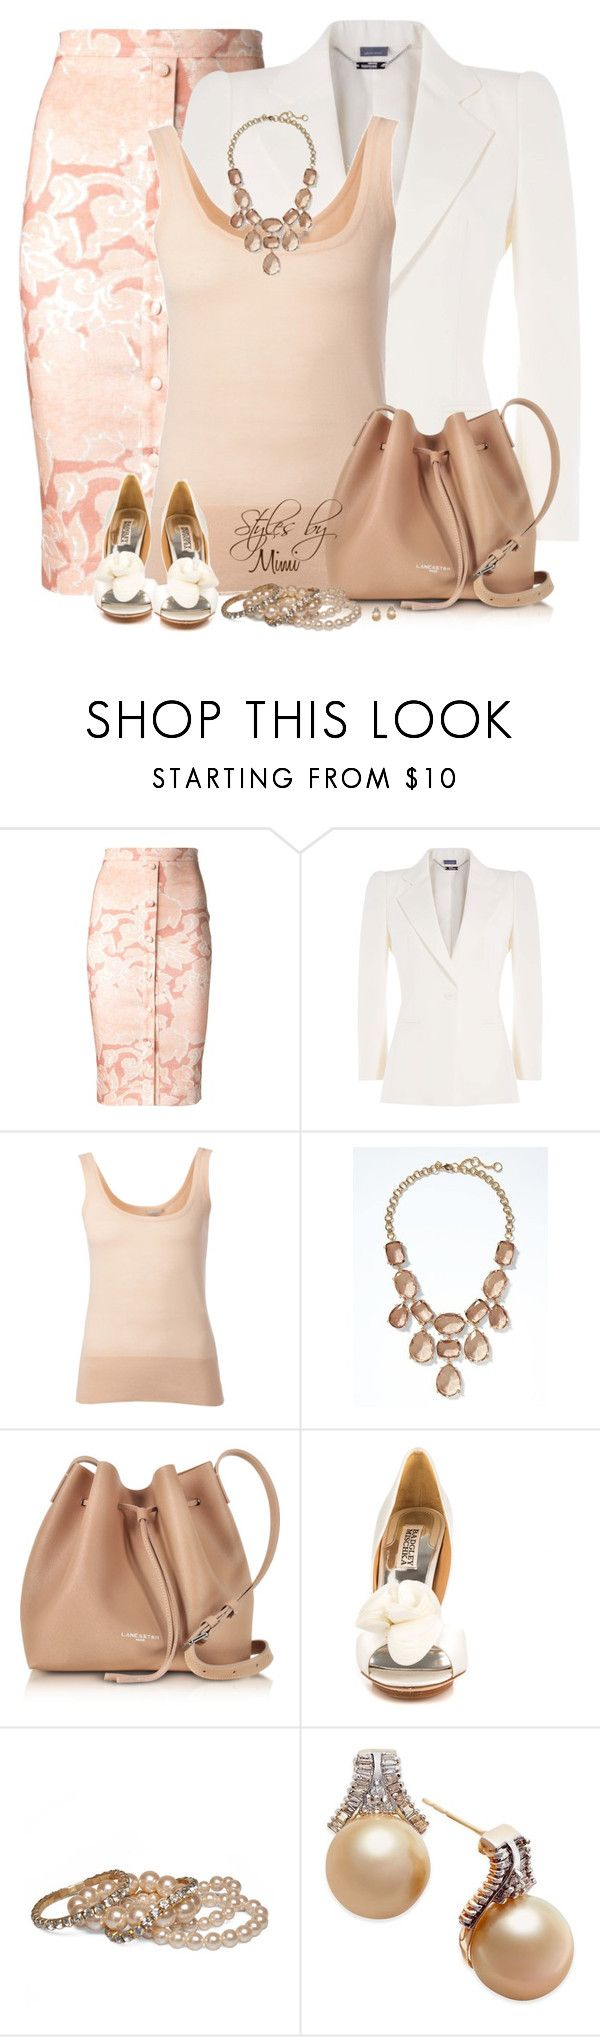 """""""Pink Blush (4.30.17)"""" by stylesbymimi ❤ liked on Polyvore featuring Altuzarra, Alexander McQueen, Michael Kors, Banana Republic, Lancaster, Badgley Mischka and Wet Seal"""